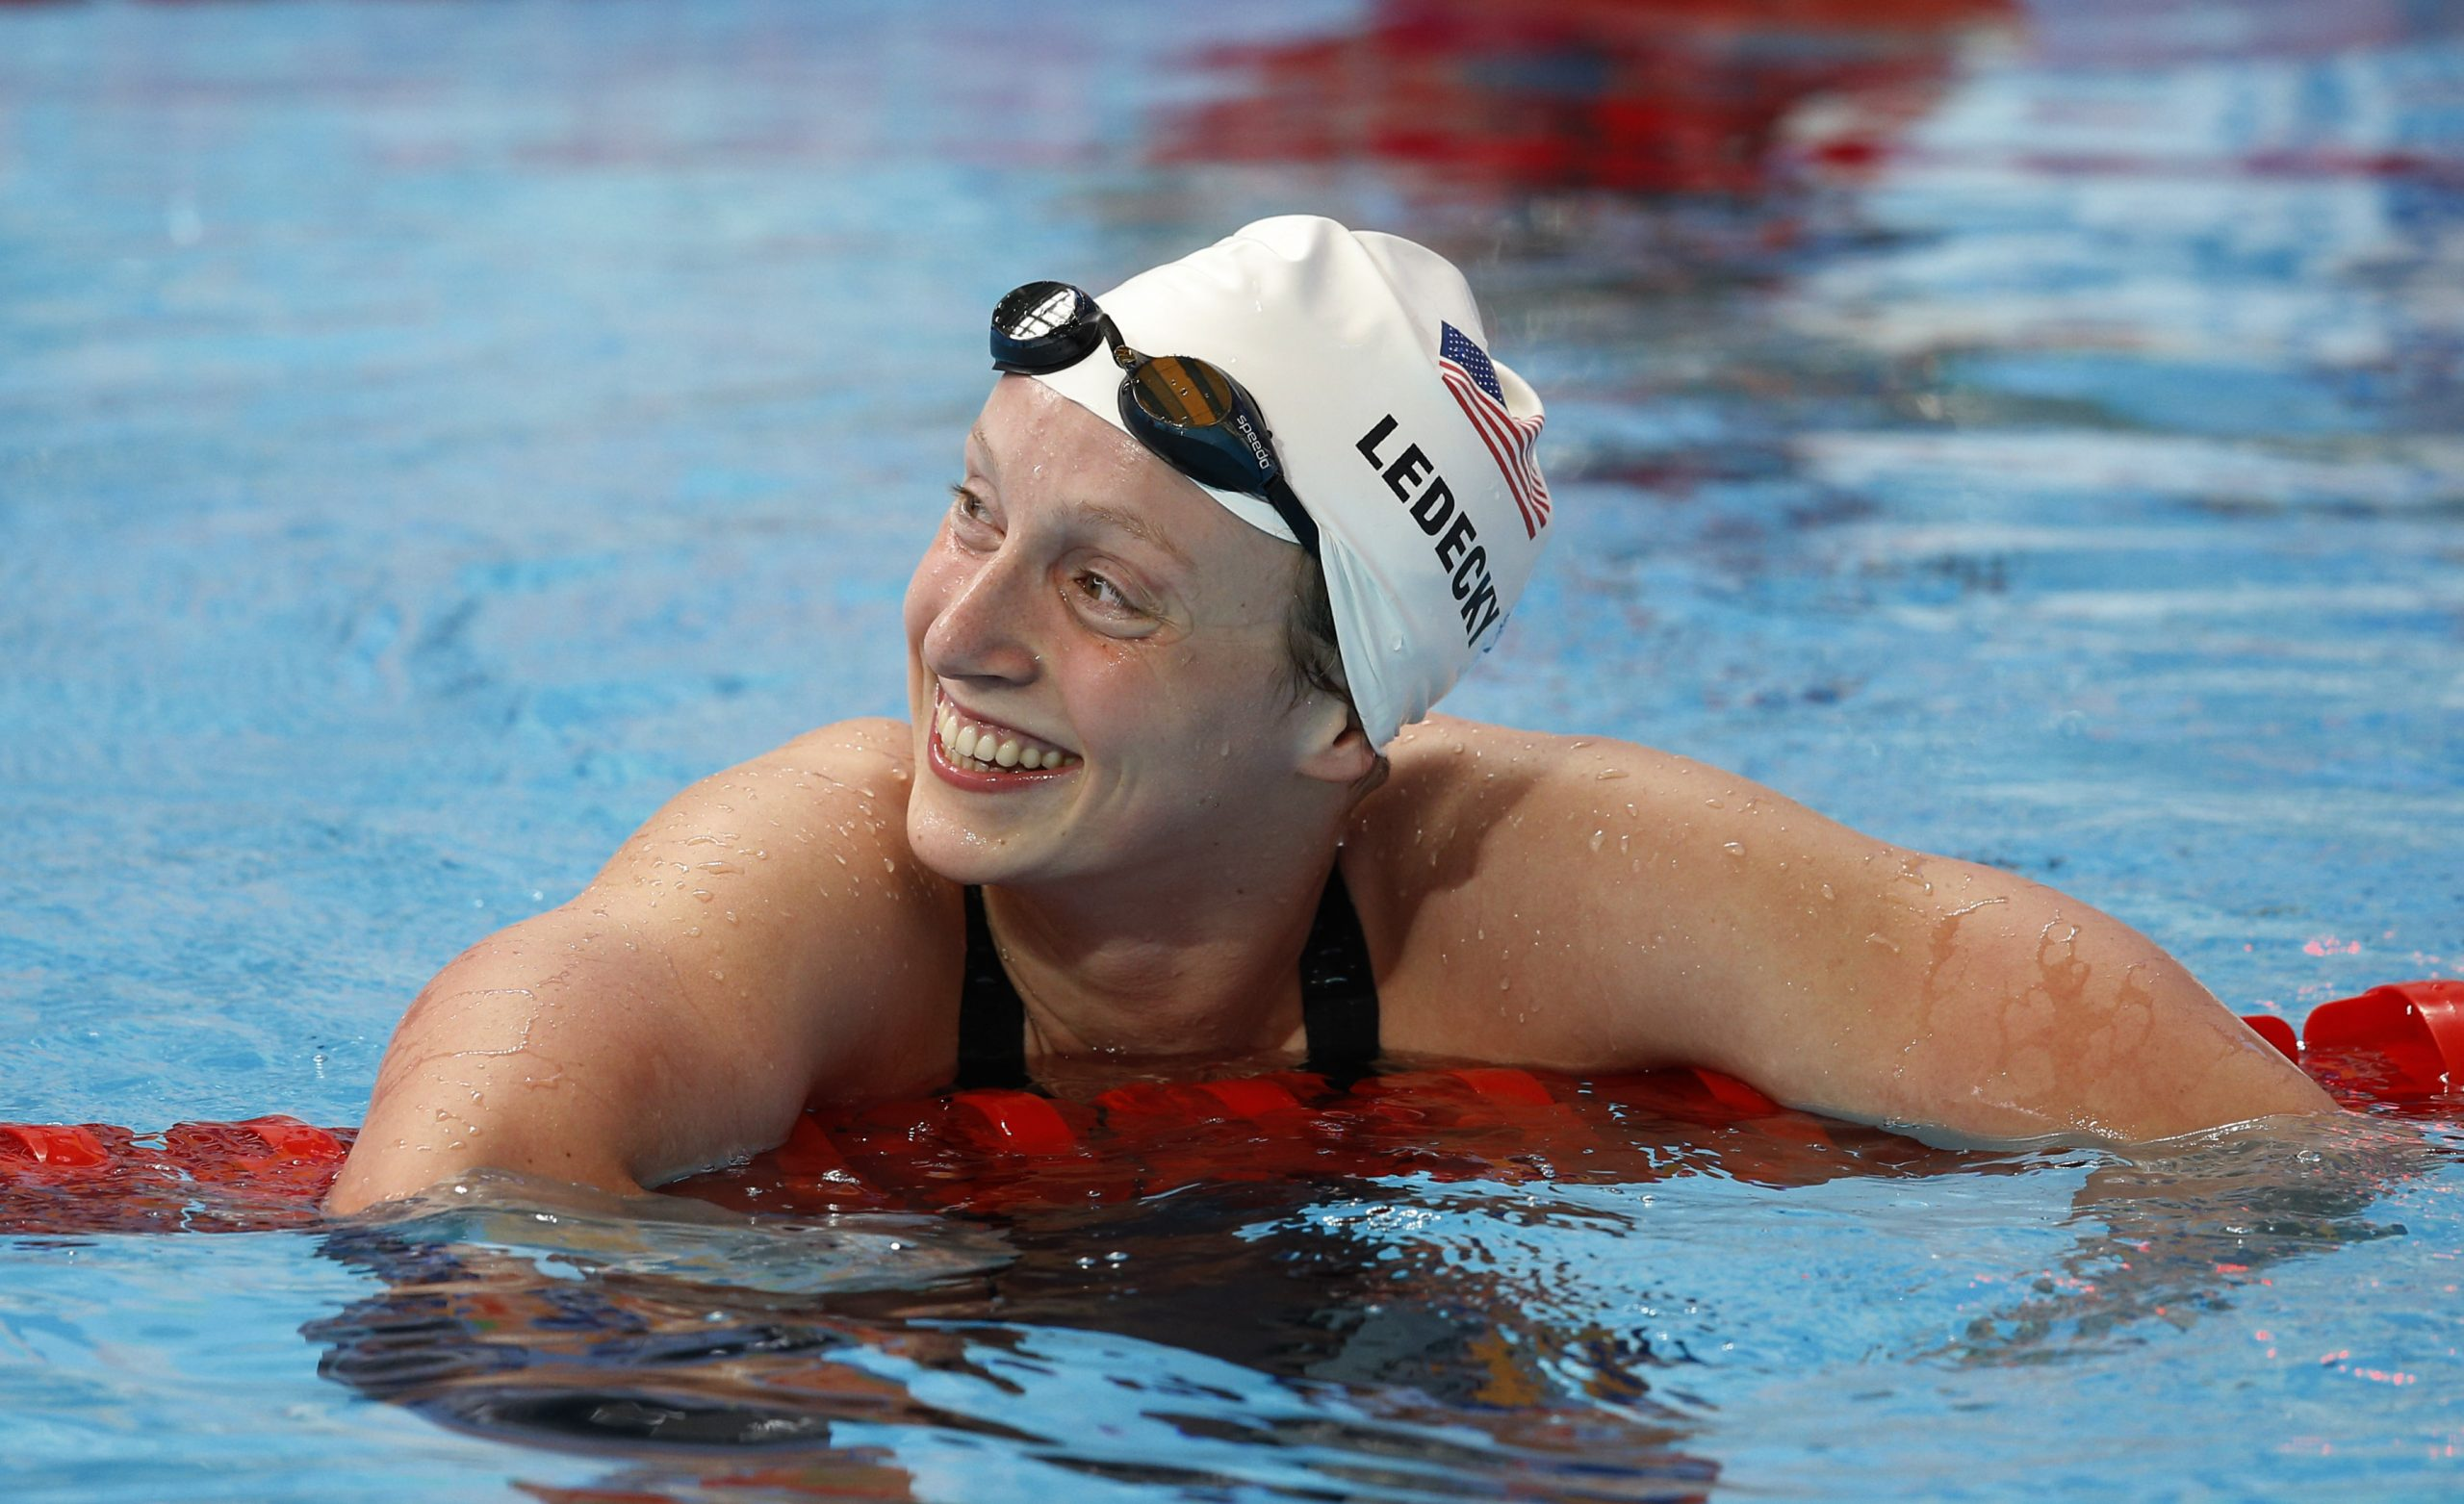 World's Best Swimmers Making Waves in Des Moines This Week Ahead of 2020 Olympics 2